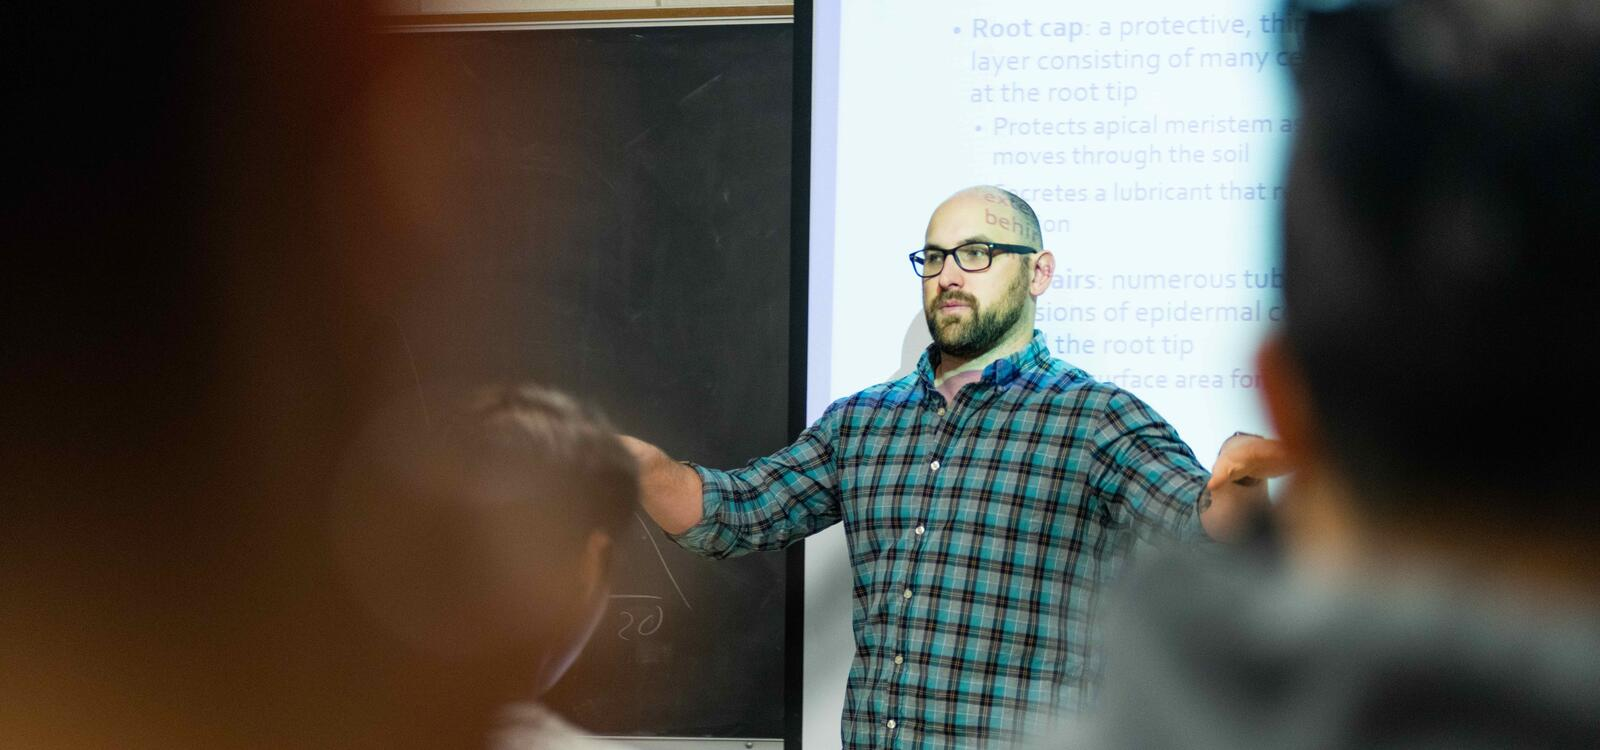 A biology professor stands in front of his projected slides and speaks to his class